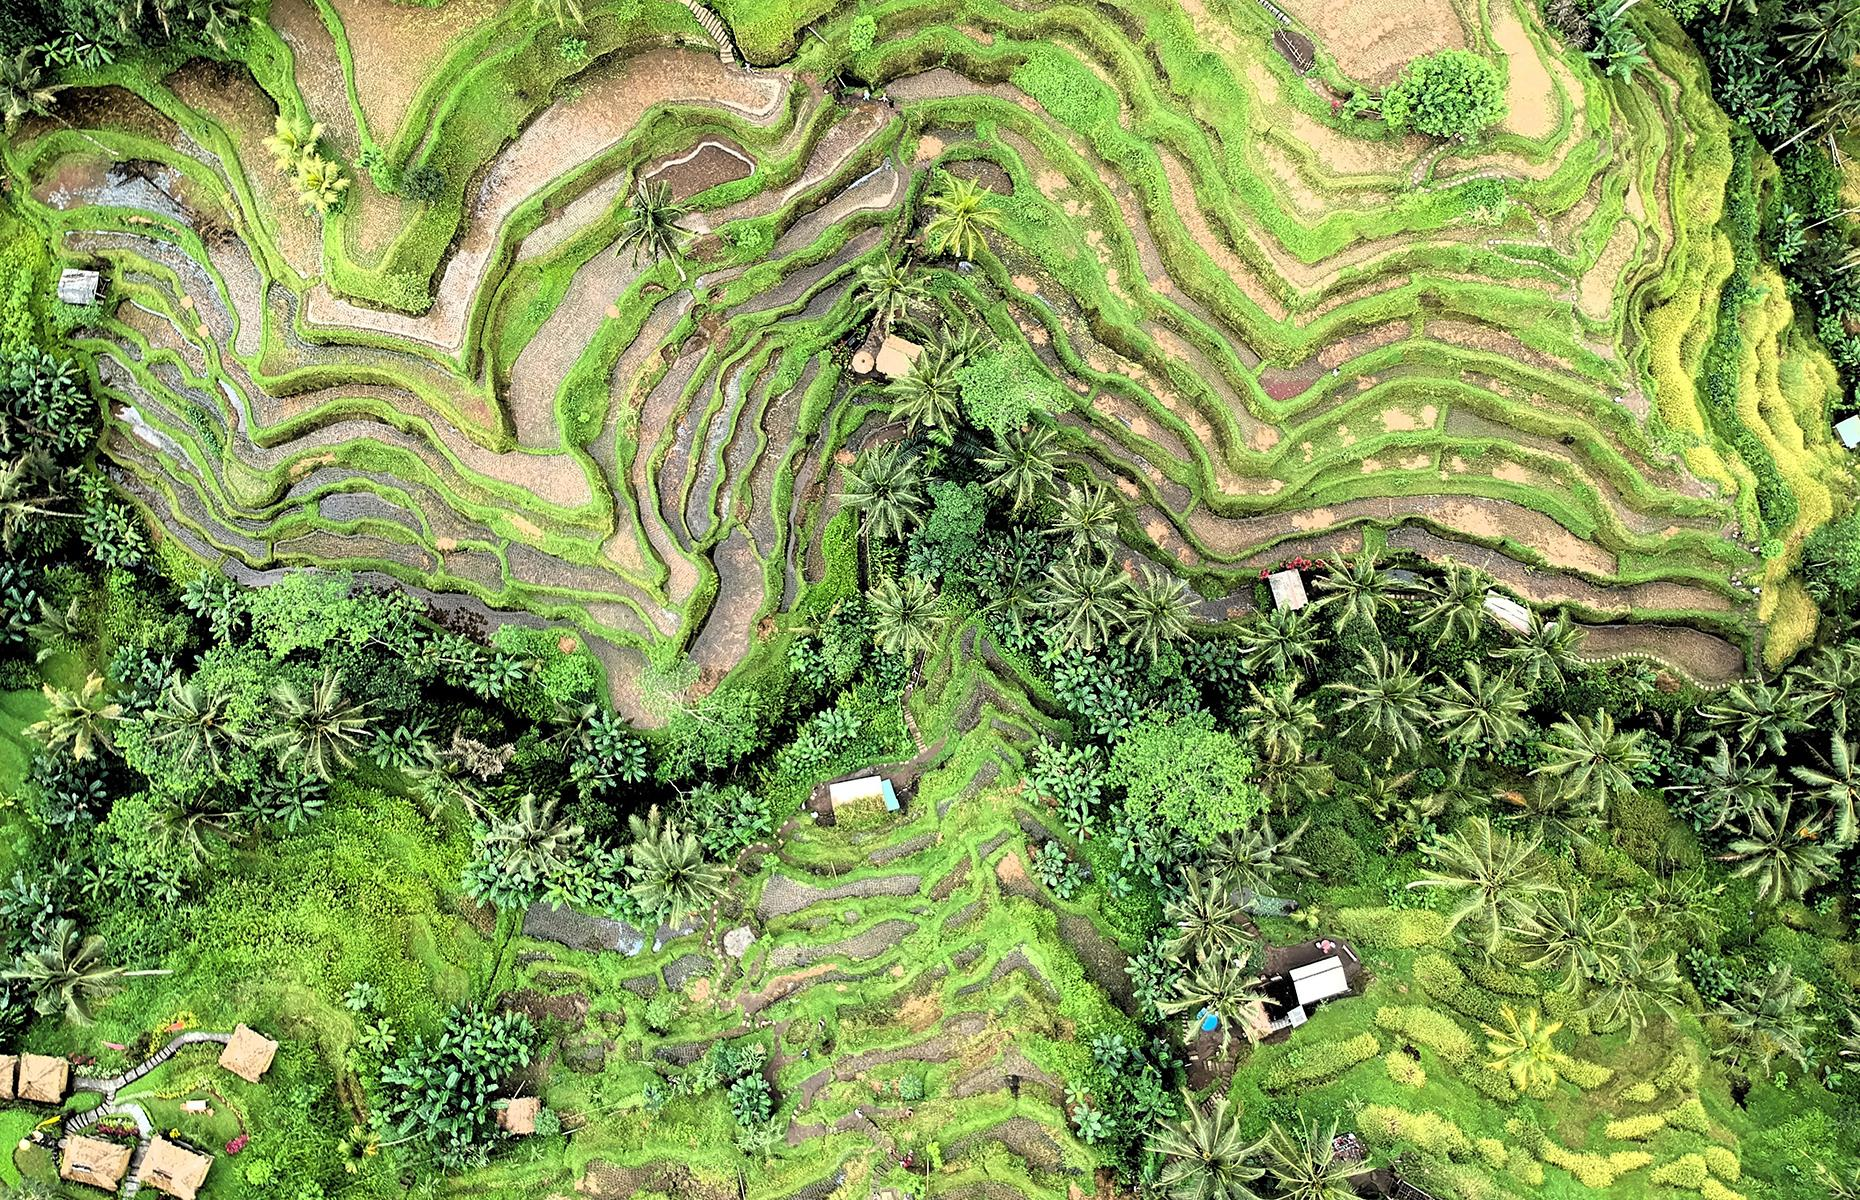 Slide 5 of 43: From the air, the lush, terraced rice fields of Tegallalang look almost otherworldly, scattered with palms, flowering shrubs and thatched huts. They stretch out about six miles (10km) north of the Balinese town of Ubud.